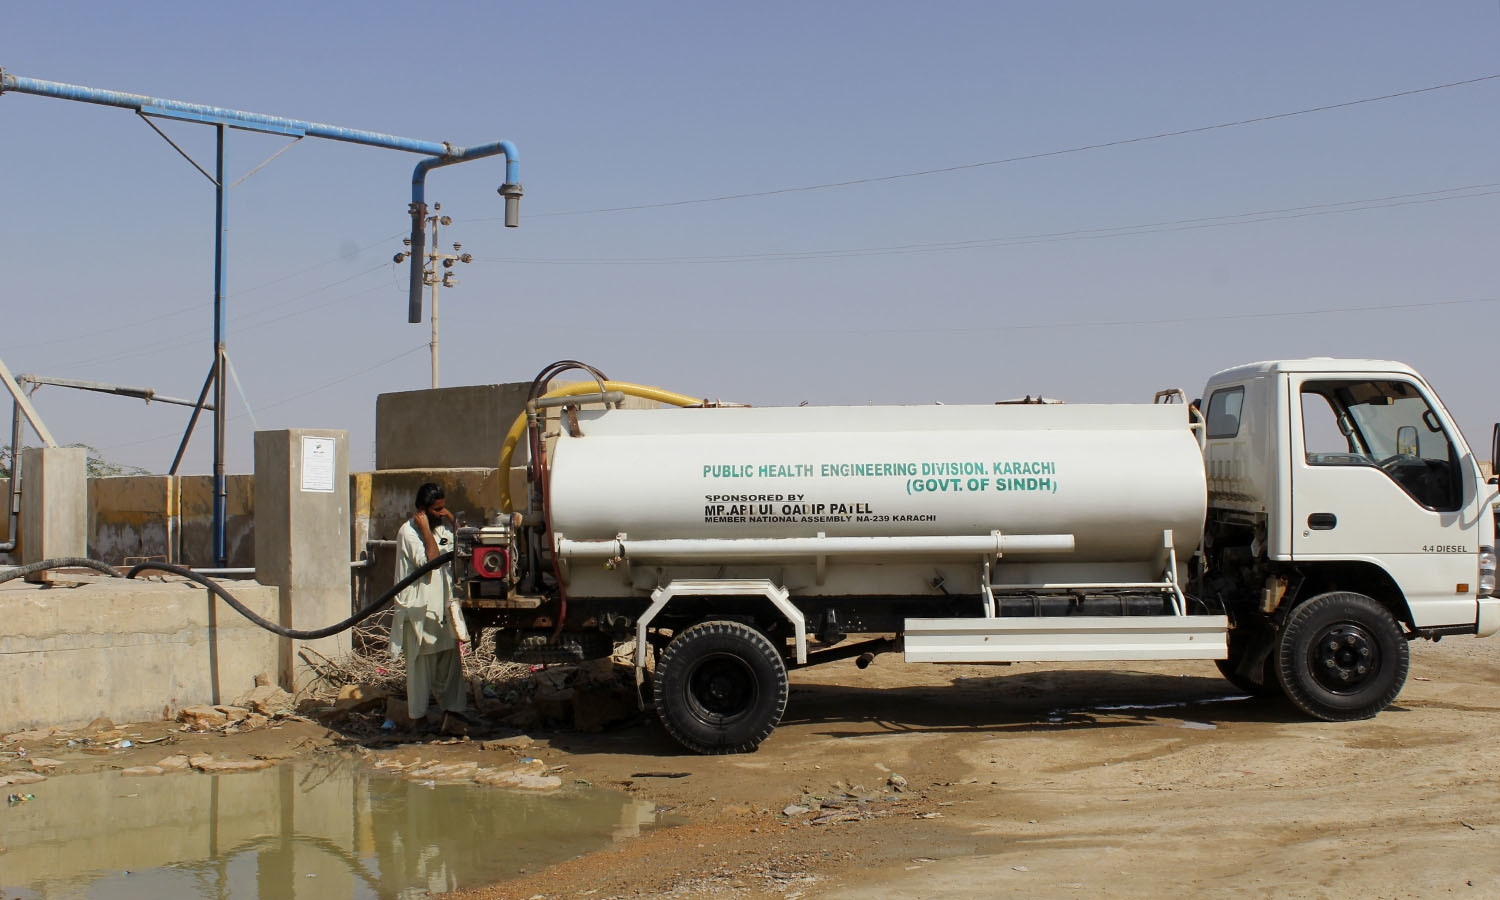 A Reverse Osmosis water desalination plant set up to provide free water to the village instead sells water to government-owned tankers. Residents then purchase tankers of water from the government. ─Photo by the author